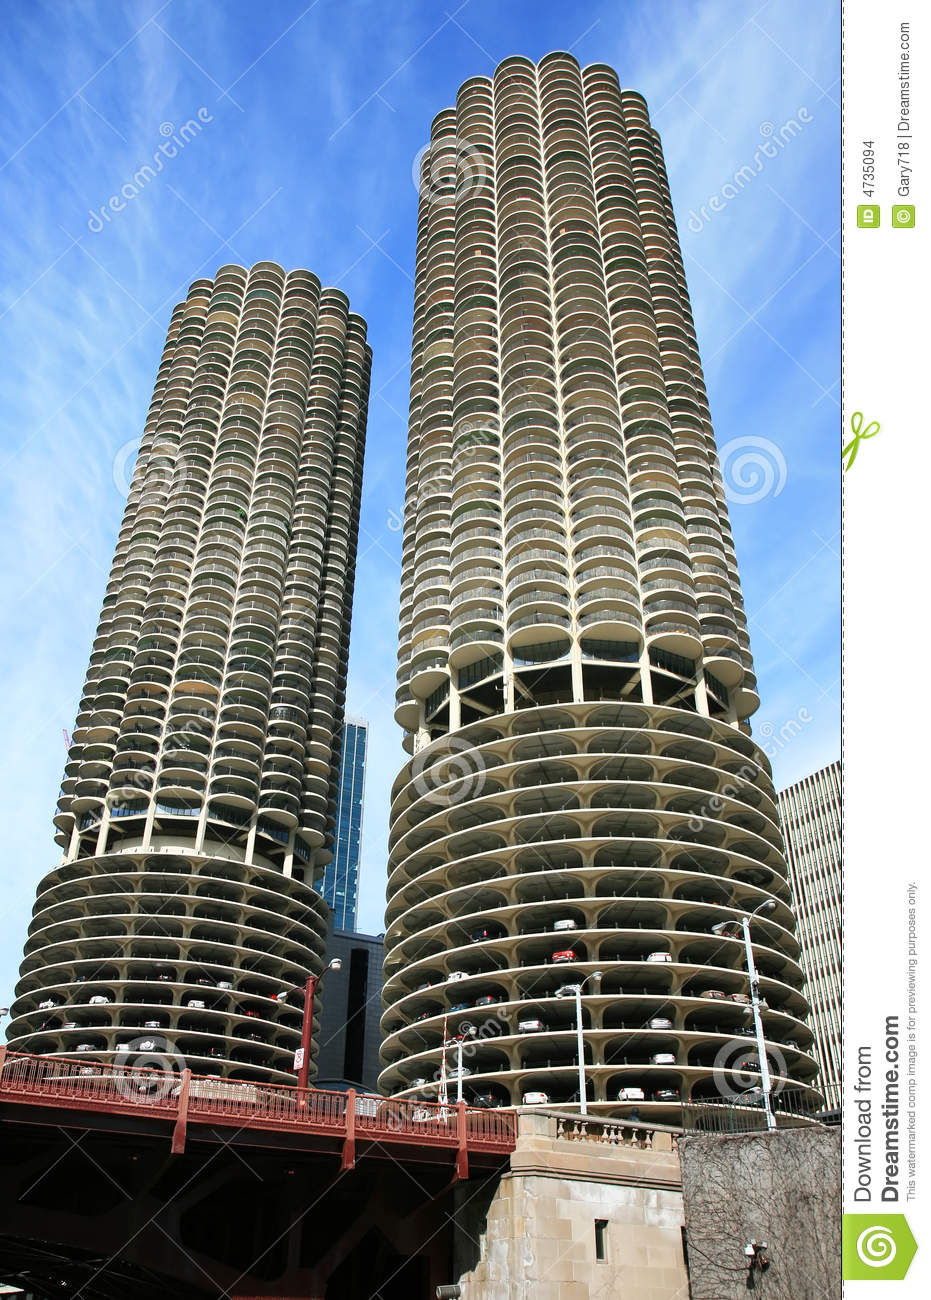 Chicago High Fashion Editorial: The High-rise Buildings In Chicago Stock Images